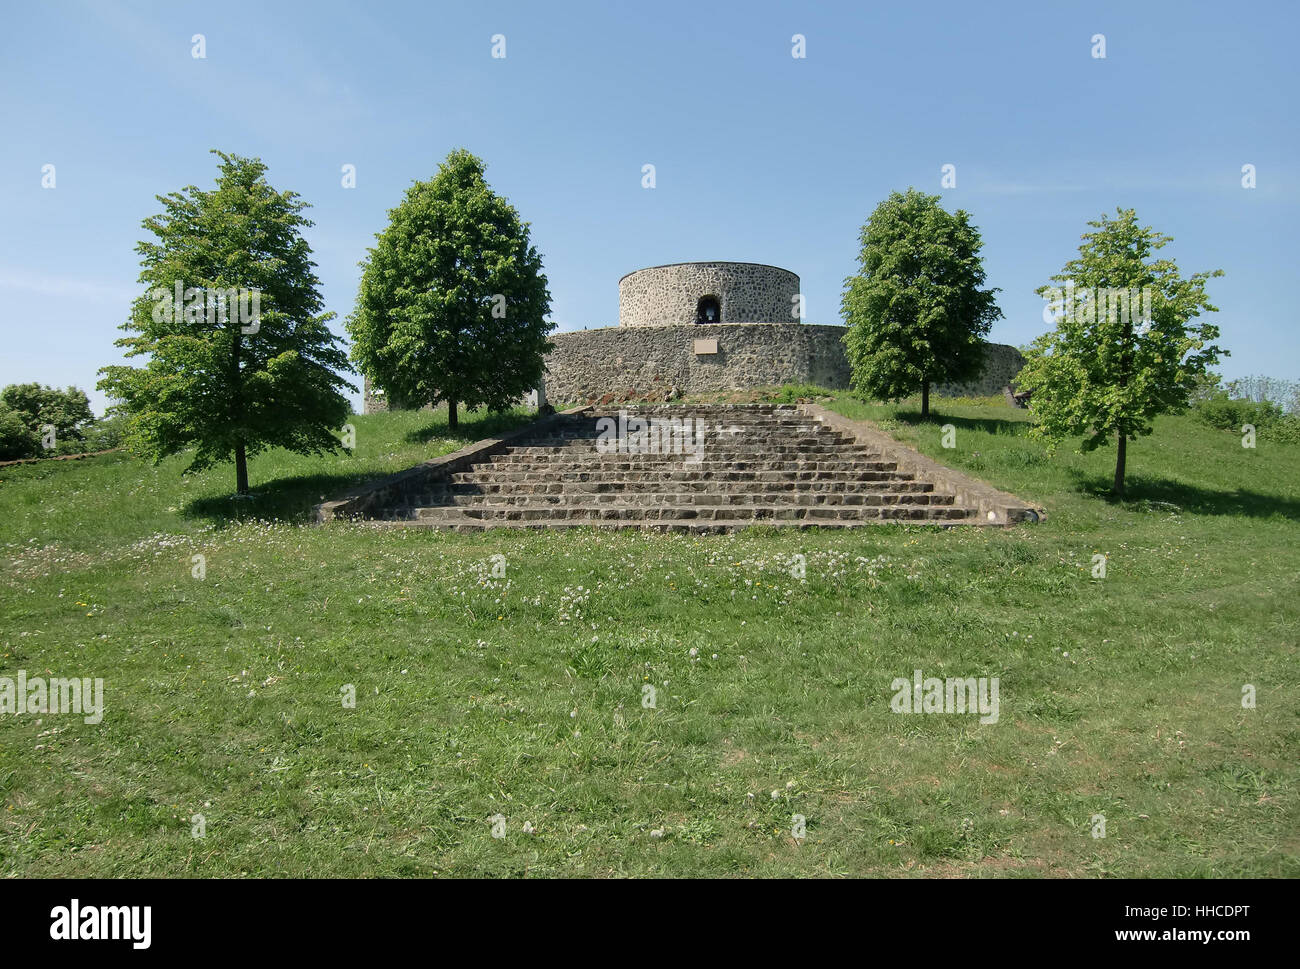 stool, stairs, historical, tree, hill, stone, shine, shines, bright